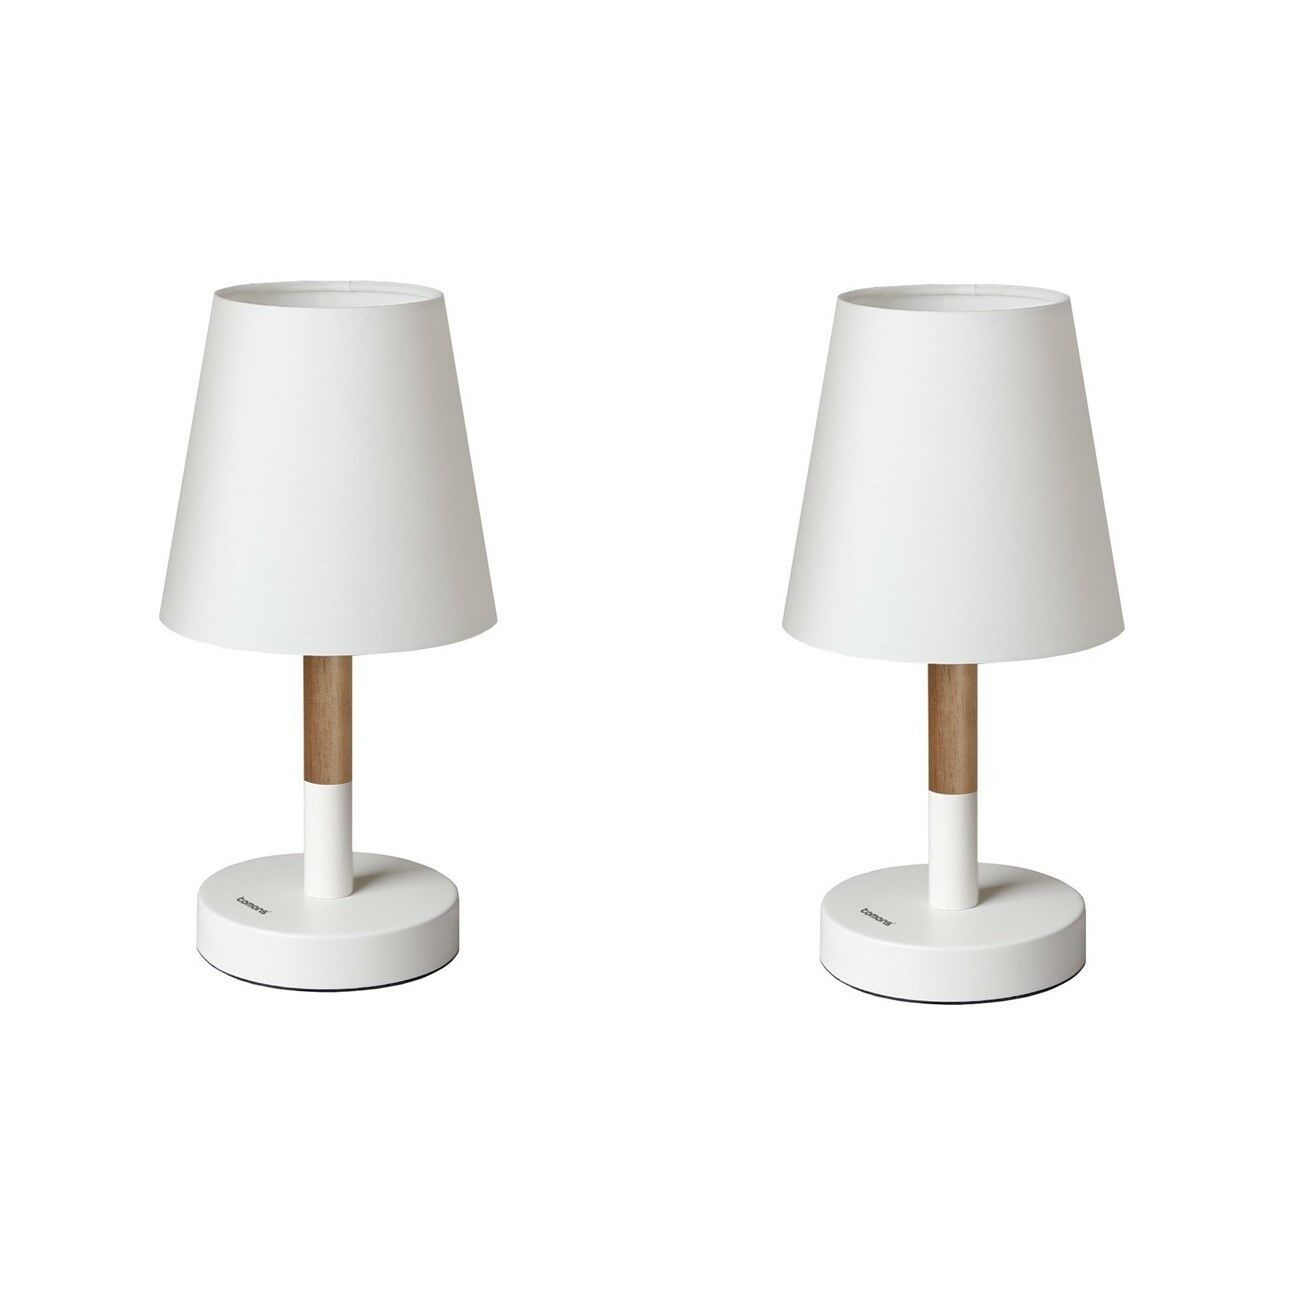 set of 2 modern wood bedside lamp